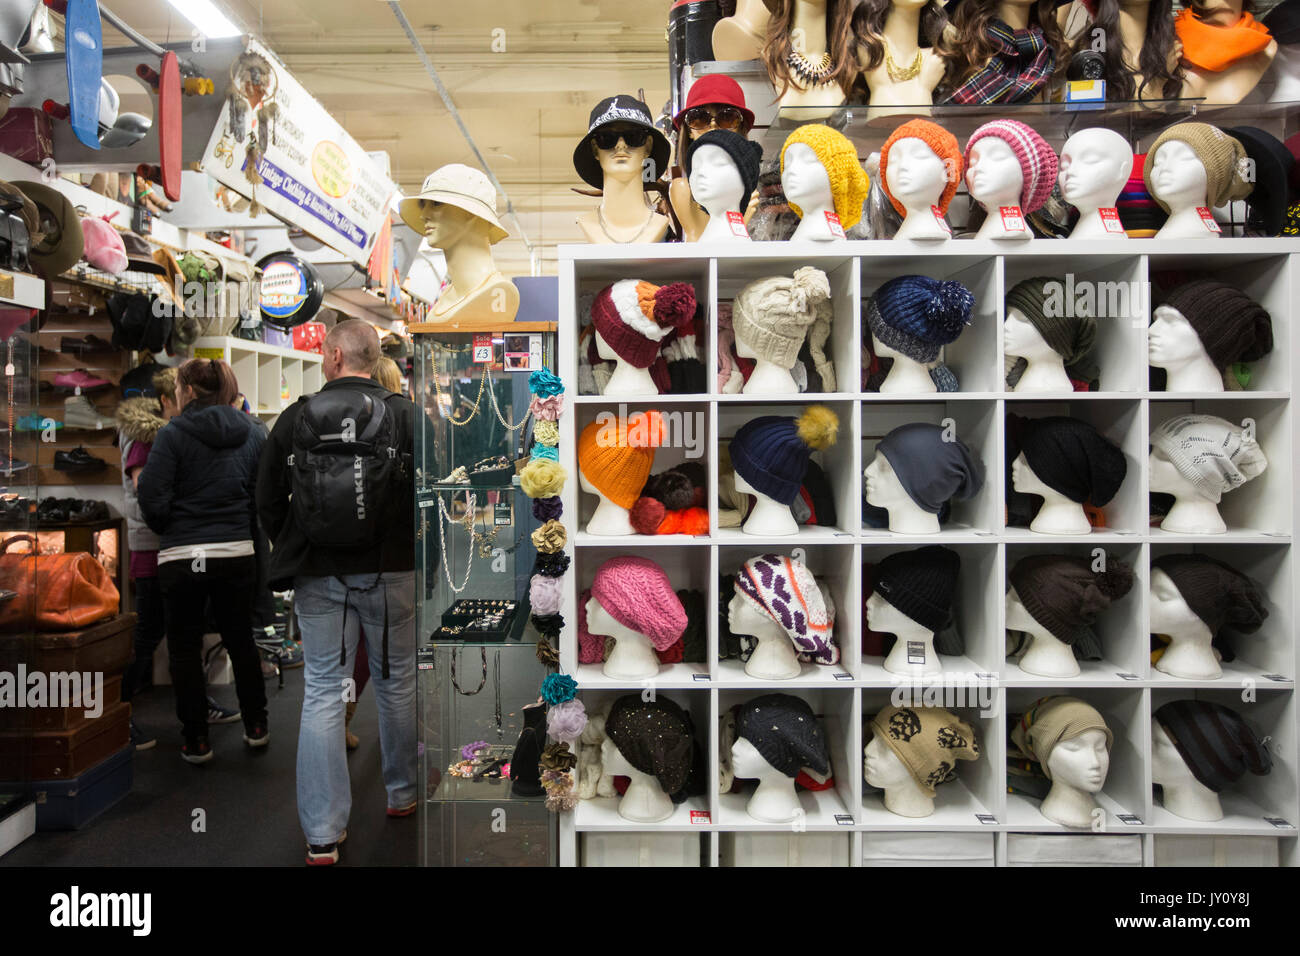 Afflecks Palace in Manchester City Centre for alternative music and clothes shopping. Photo by Fabio De Paola - Stock Image